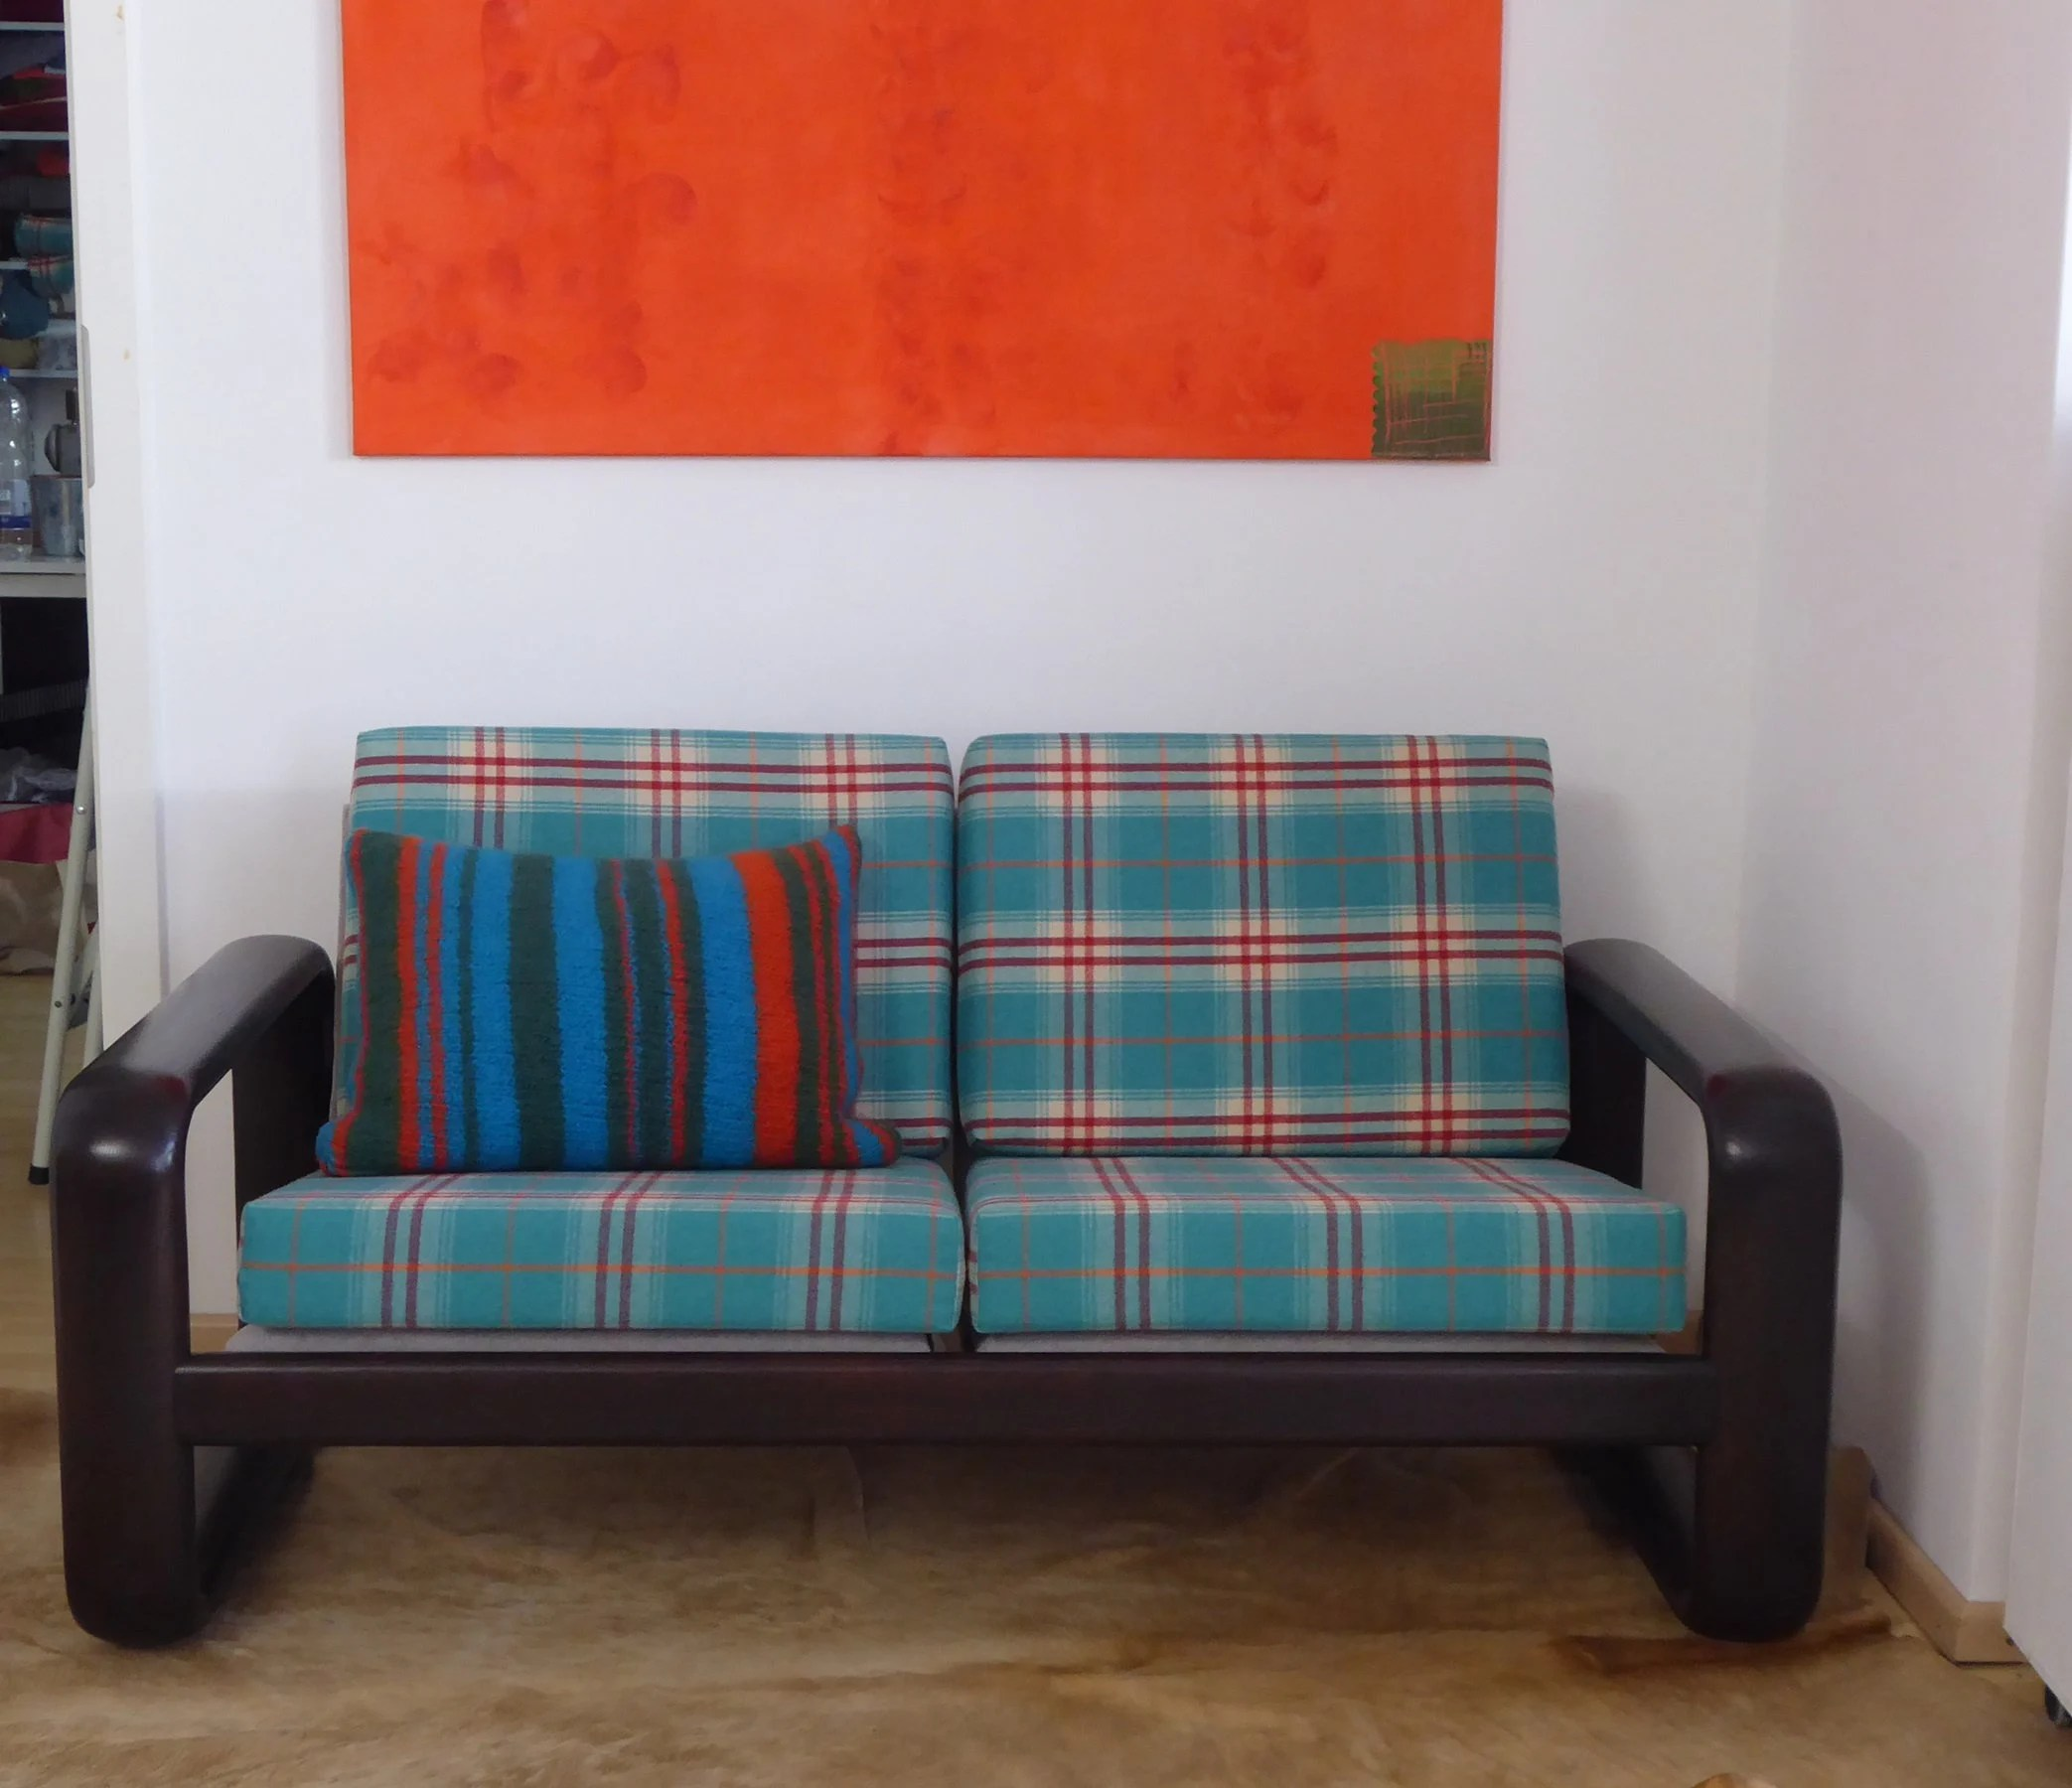 Möbelbezugsstoffe Vintage German Design Sofa Of Rosentahl Completeley Refurbished Vintage Design Sofa Hombre Sofa With Checkered Scottisch Upholstery Fabric